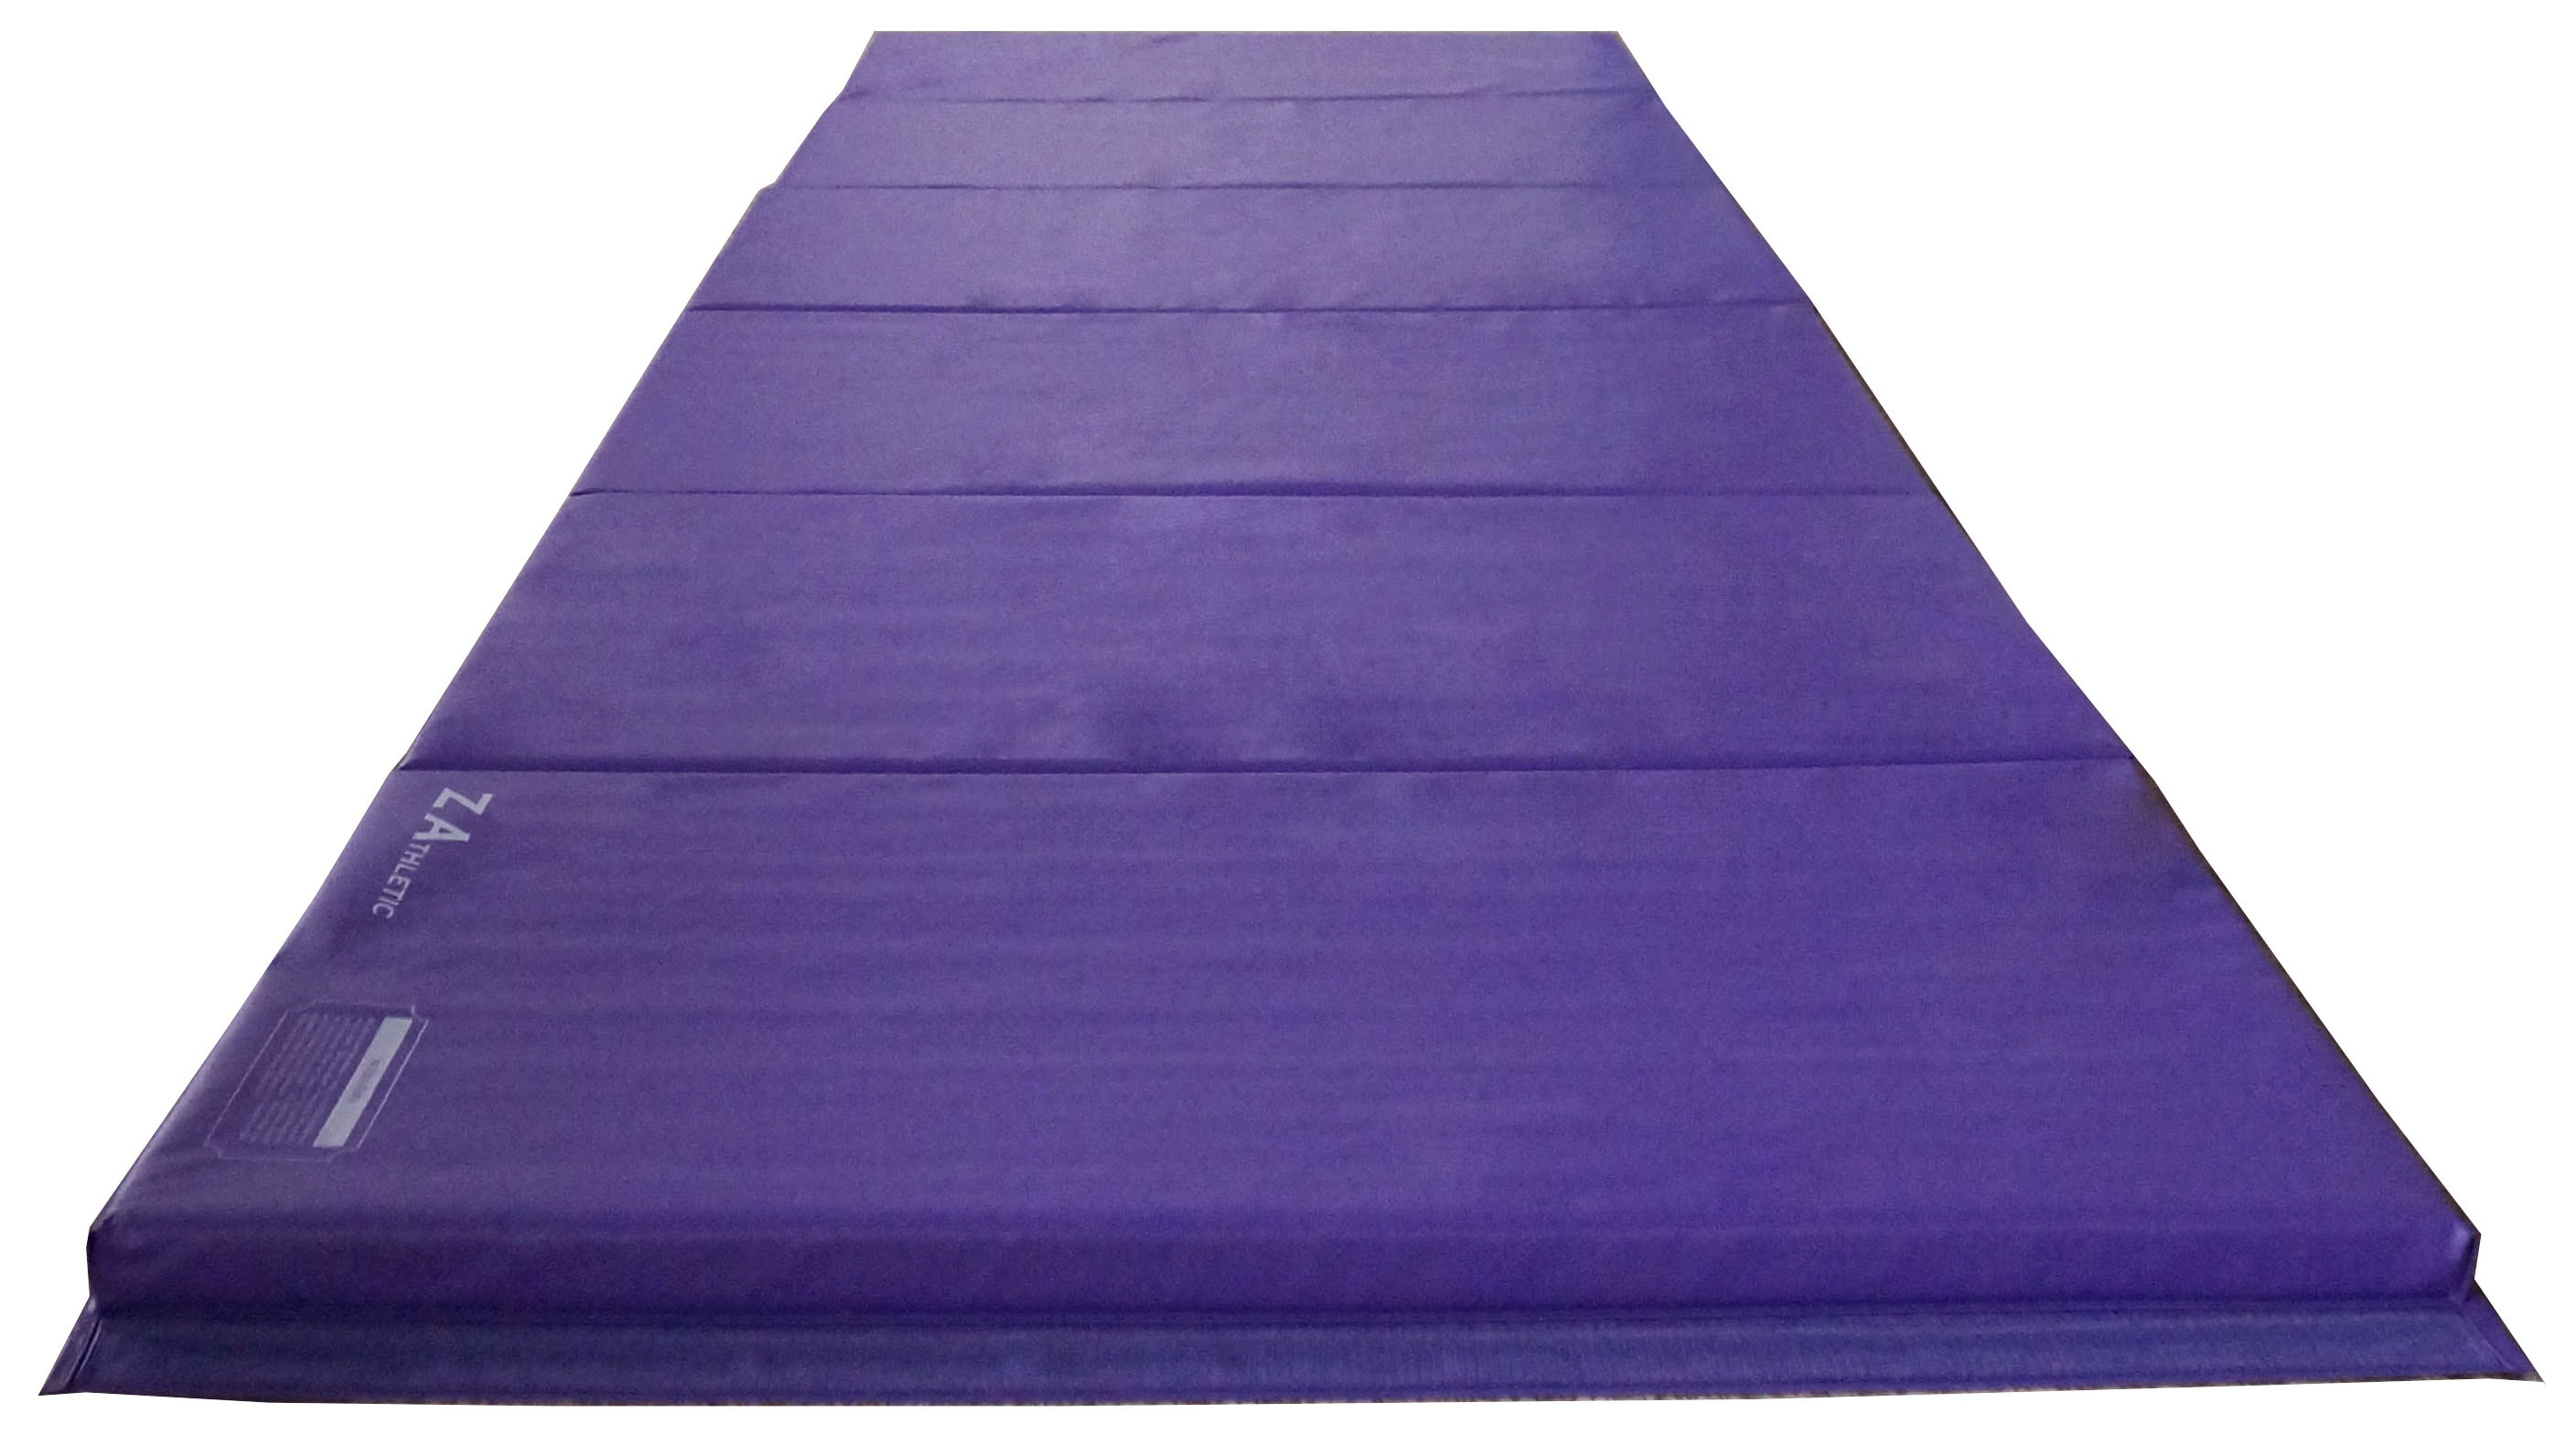 aid mat sports first standing folding gym singapore javy mats jump broad